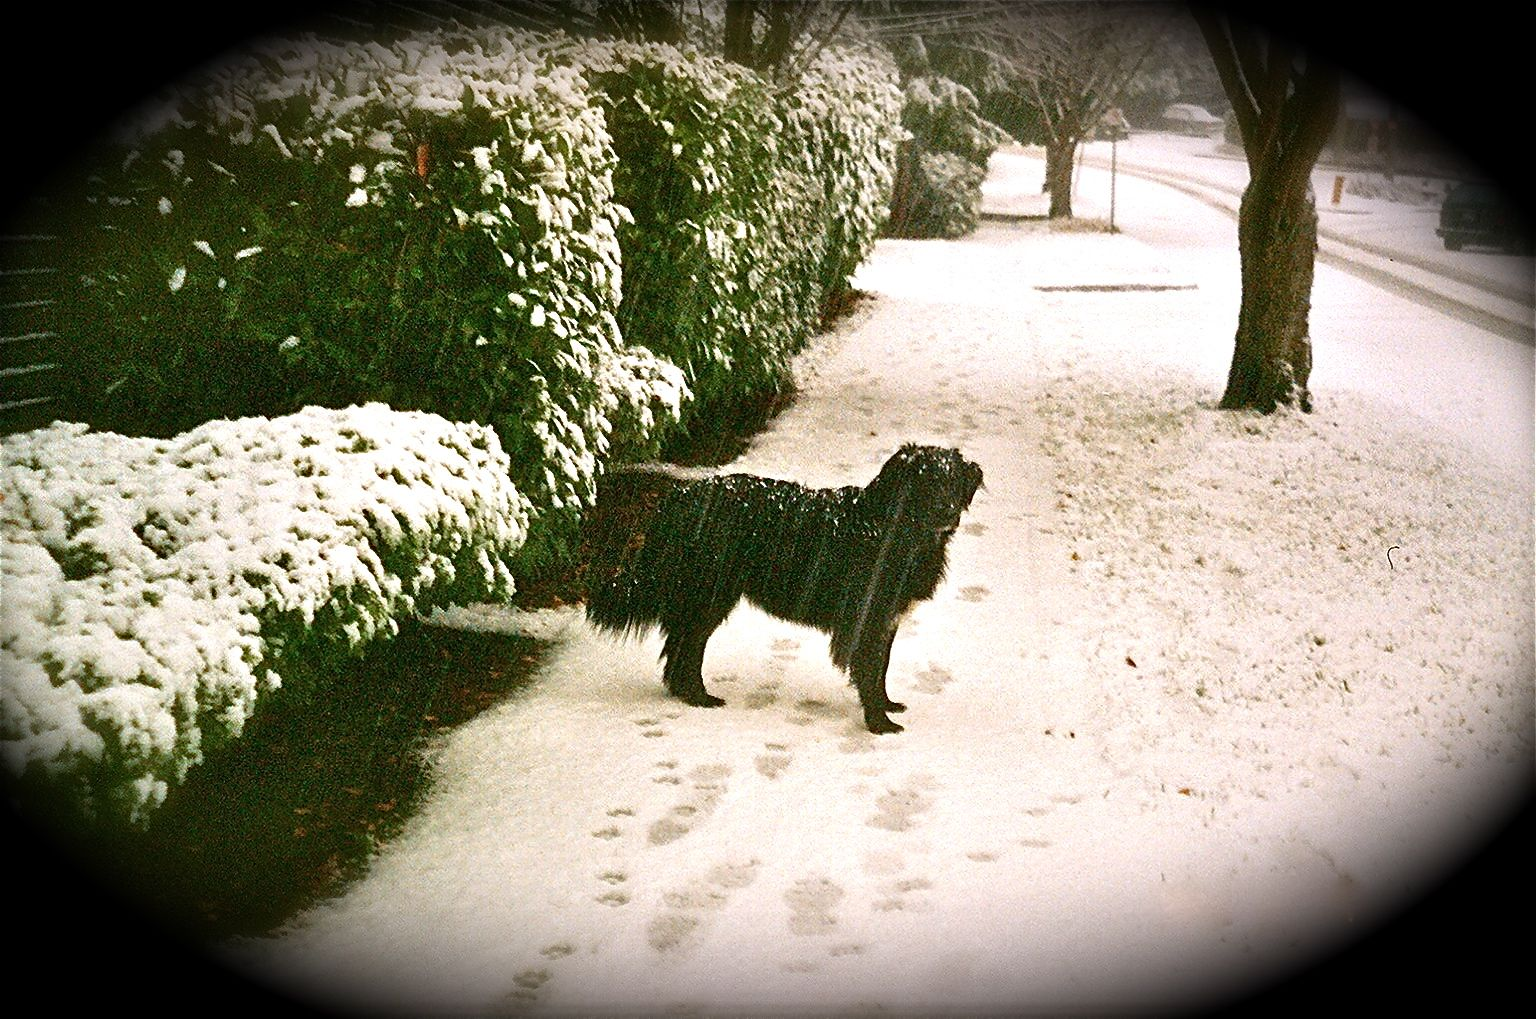 Indy in the snow!